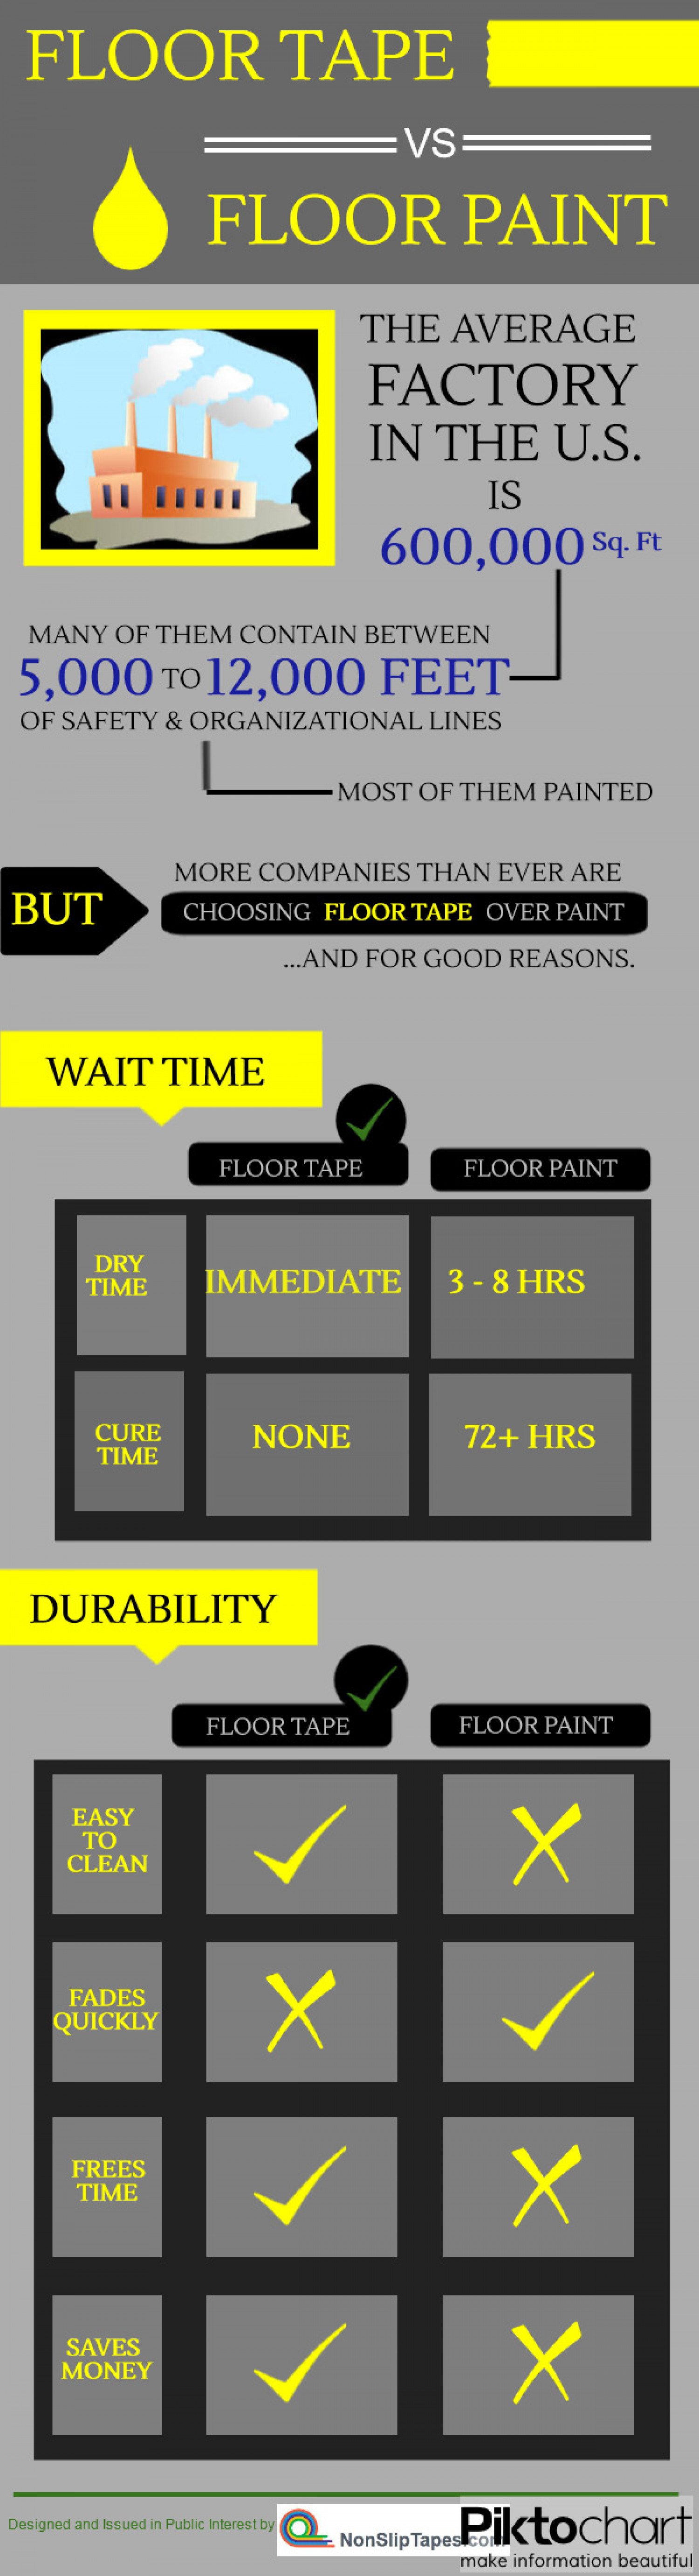 FLOOR TAPE VS FLOOR PAINT Infographic